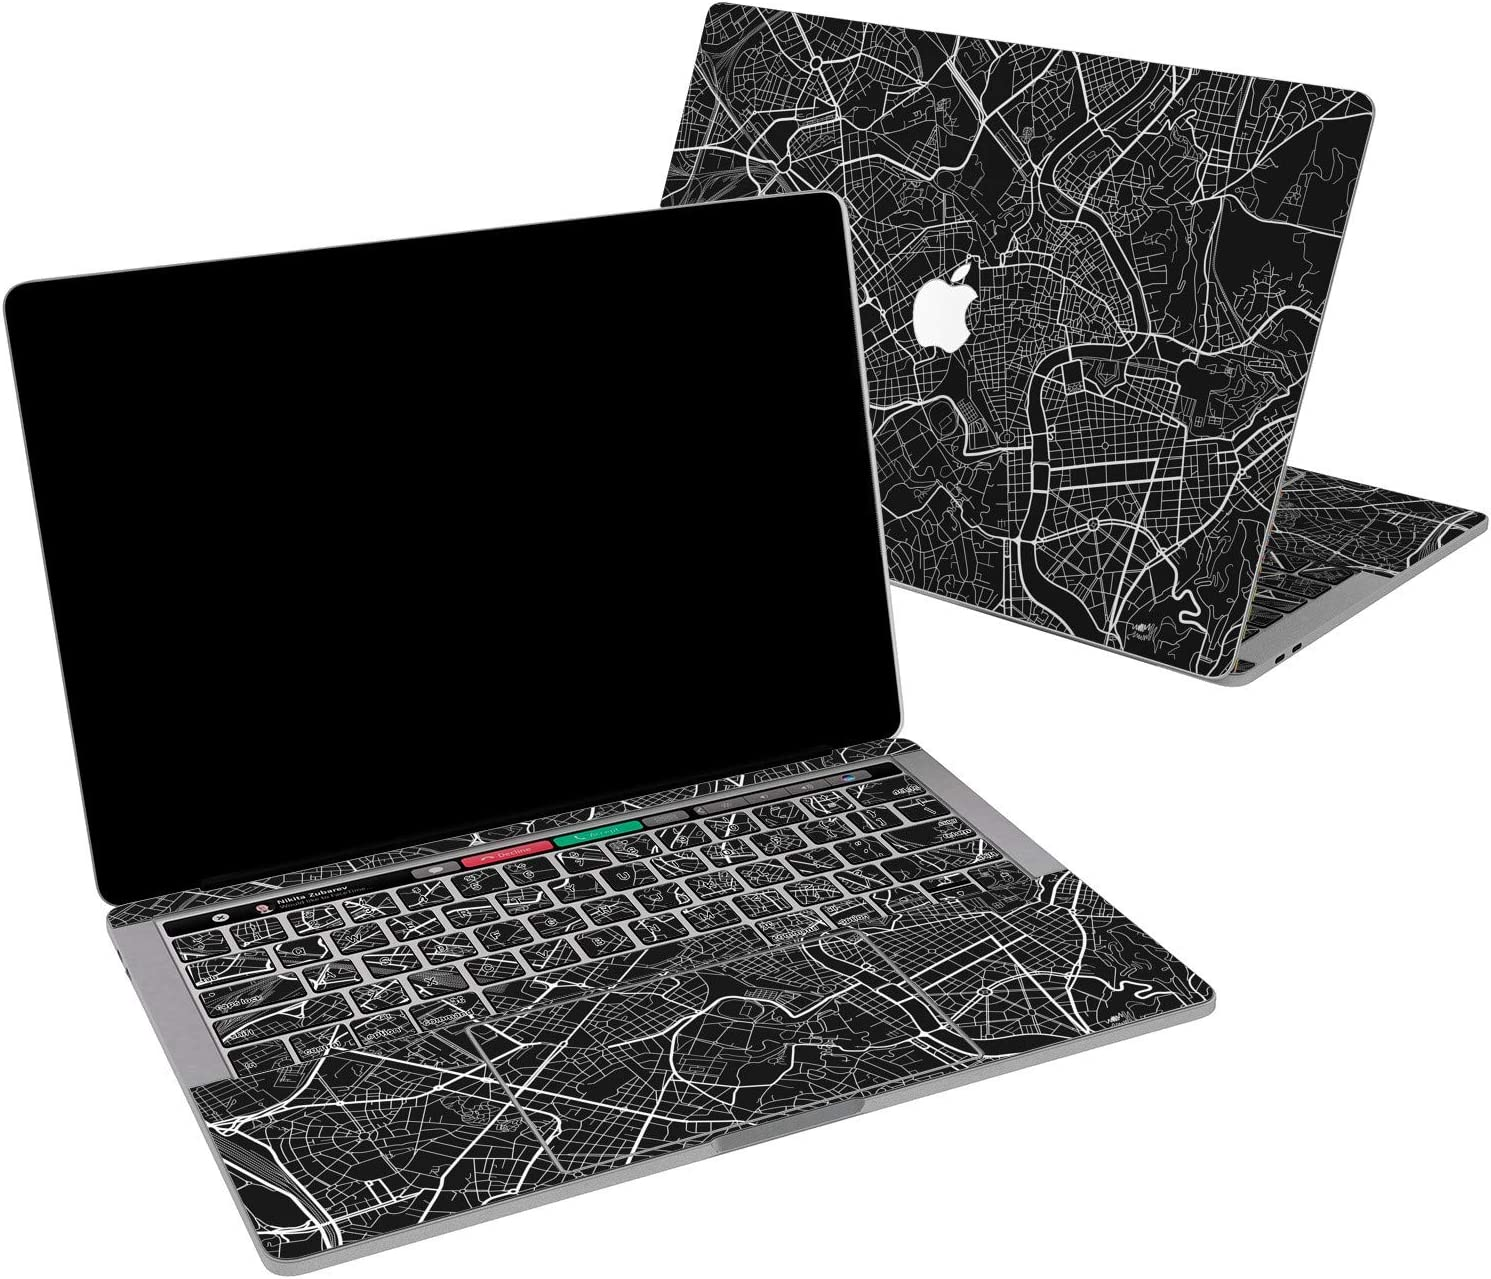 Lex Altern Vinyl Skin for MacBook Air 13 inch Mac Pro 16 15 Retina 12 11 2020 2019 2018 2017 Monochrome City Map Pattern Basic Minimal Cool Print Laptop Cover Decal Sticker Touch Bar Protective